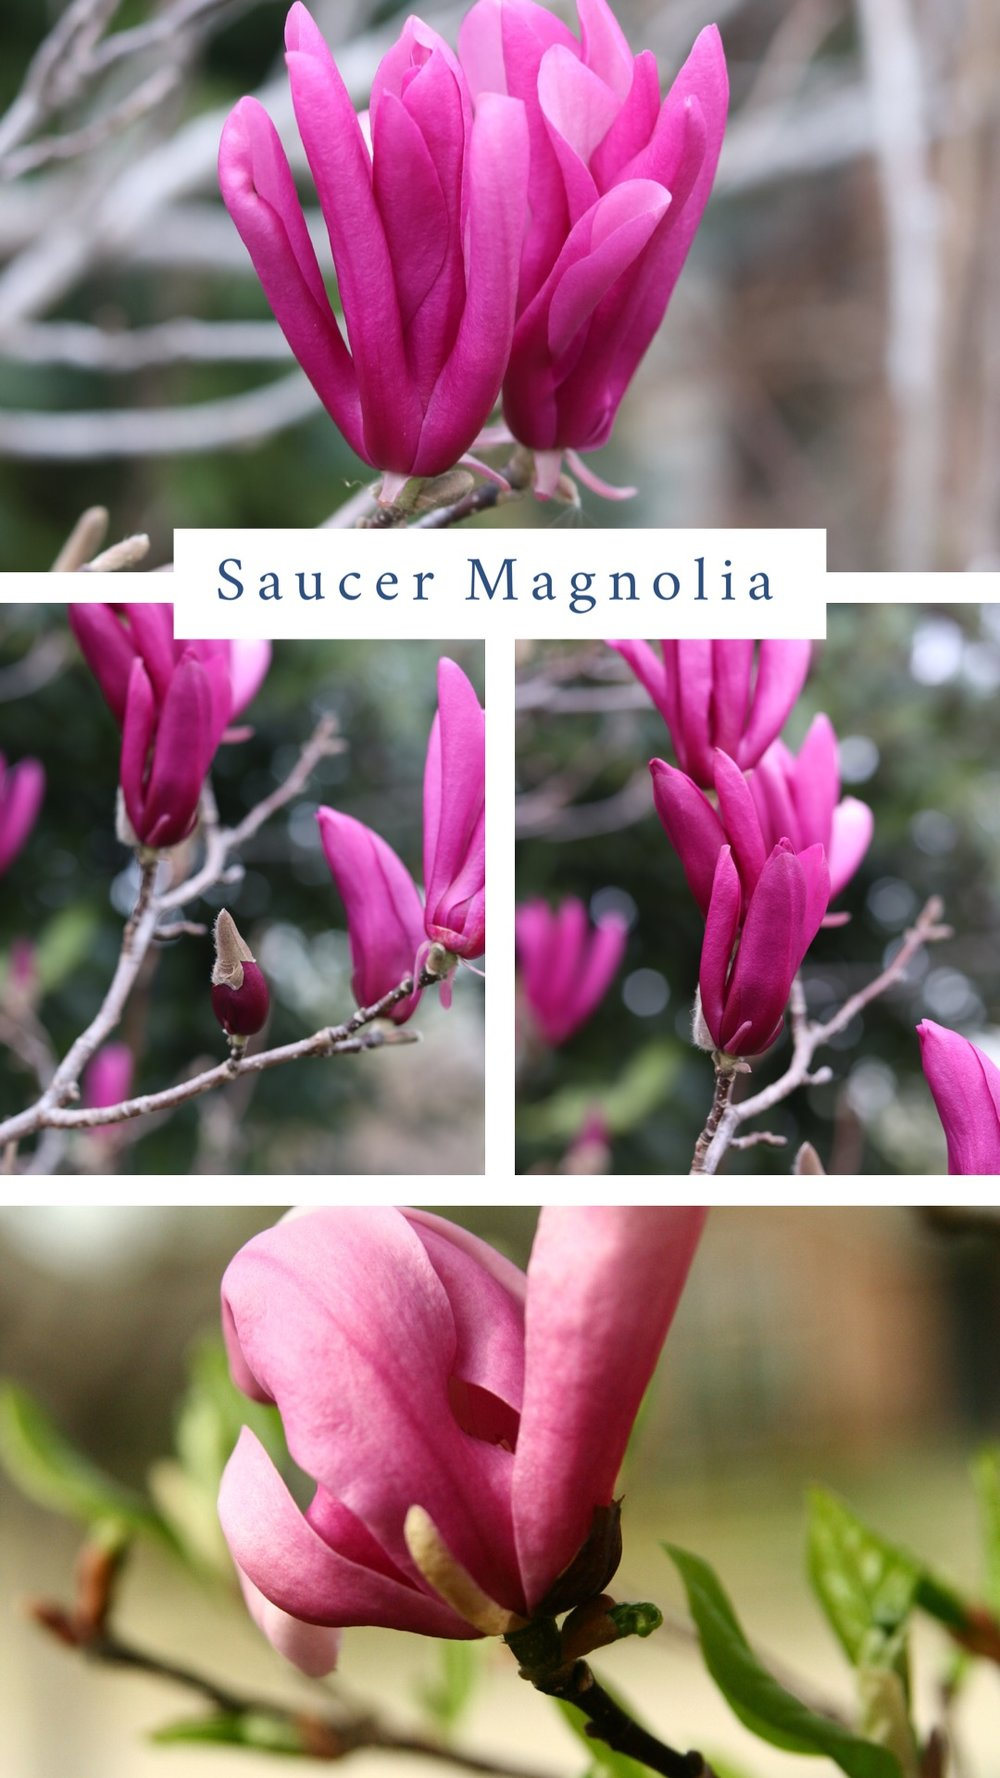 Saucer Magnolia (Magnolia x soulangiana).  A specimen type tree that reaches 15-20'. Large blooms put on a spectacular show on multi-trunk spreading branches. Blooms range from white to pink to purple. Best if planted in full sun. Plant away from radiant west or south heat where warm spring days may cause buds to develop too early only to be killed by a late freeze. They require regular deep watering in the summer months when leaves become tattered looking. It is best if their roots are protected with a layer of mulch to conserve water in the summer.